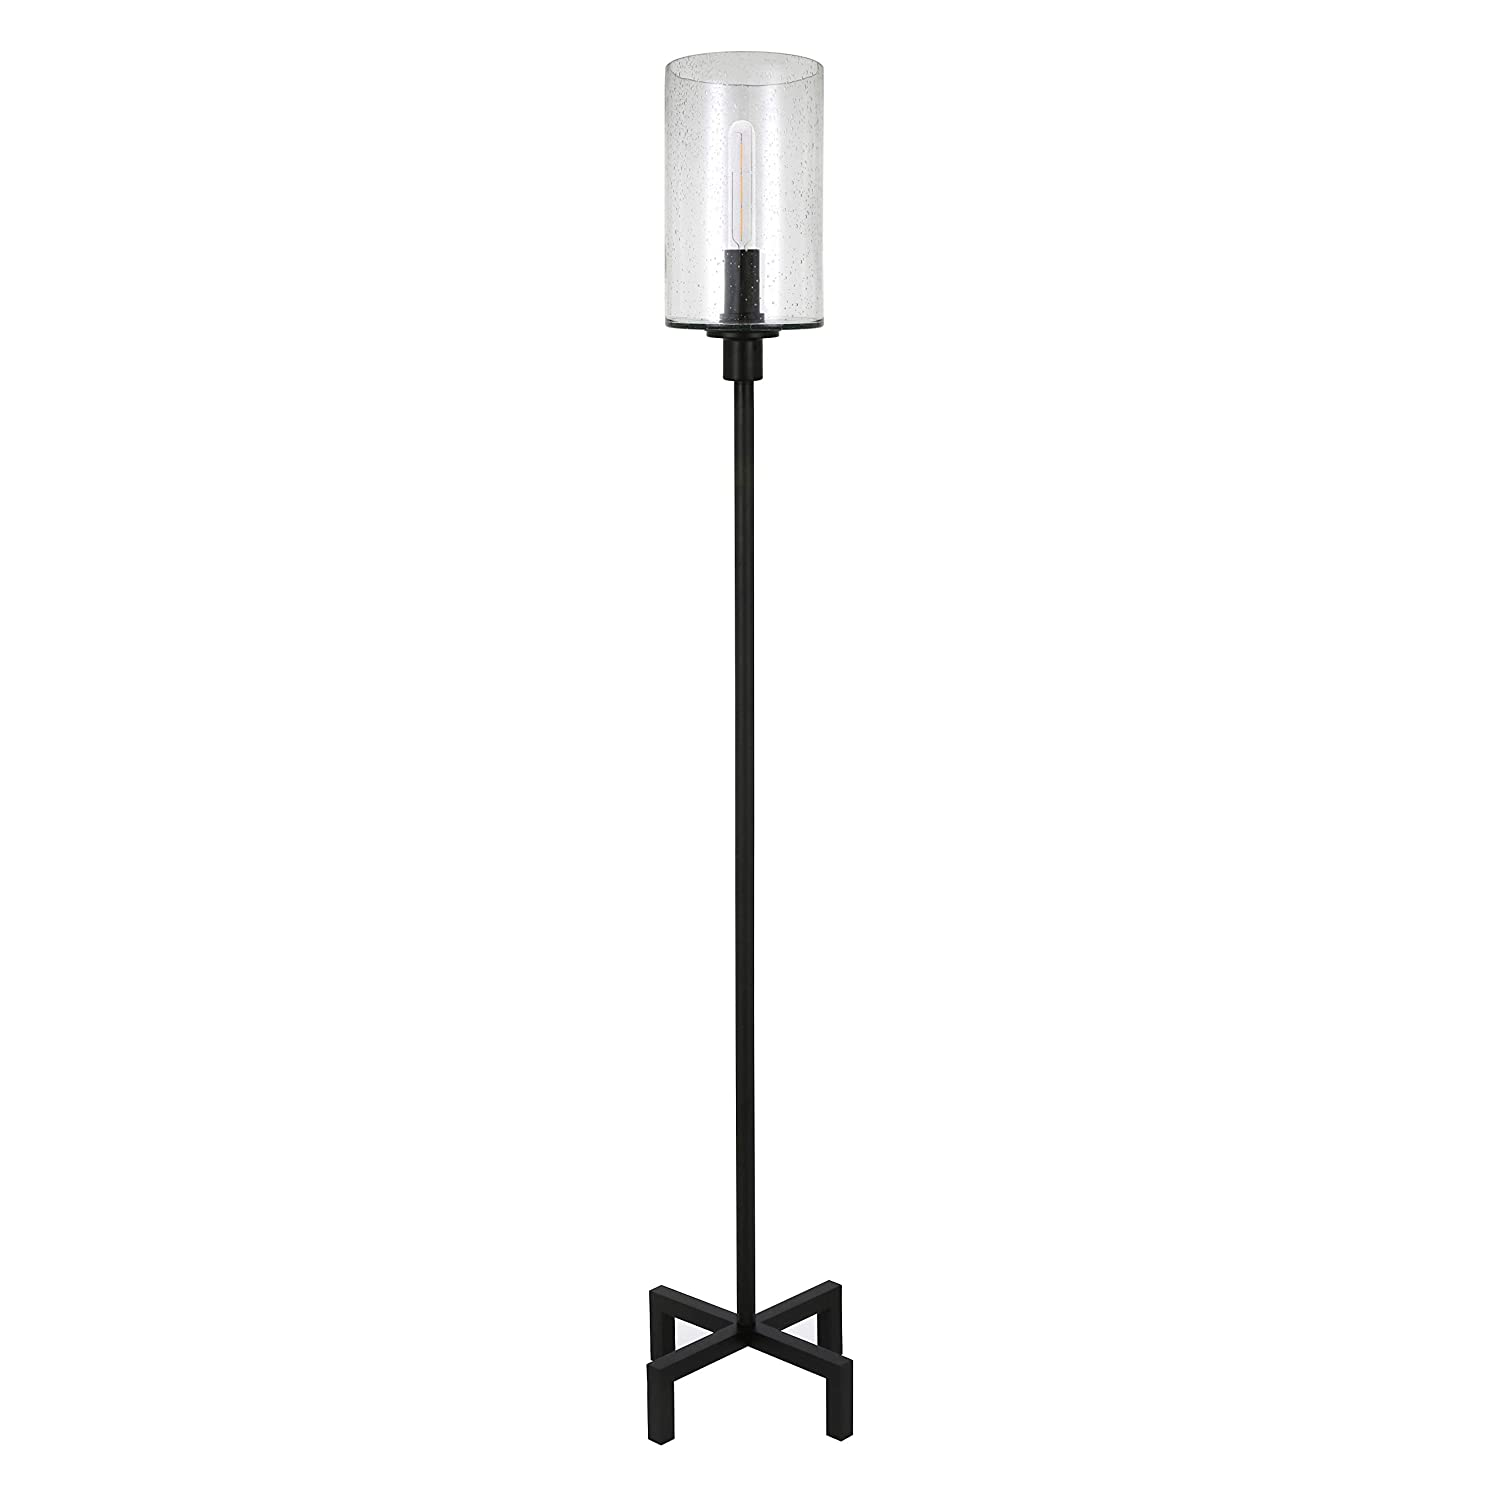 Henn&Hart FL0011 Modern Farmhouse seeded Lamp One Size Black